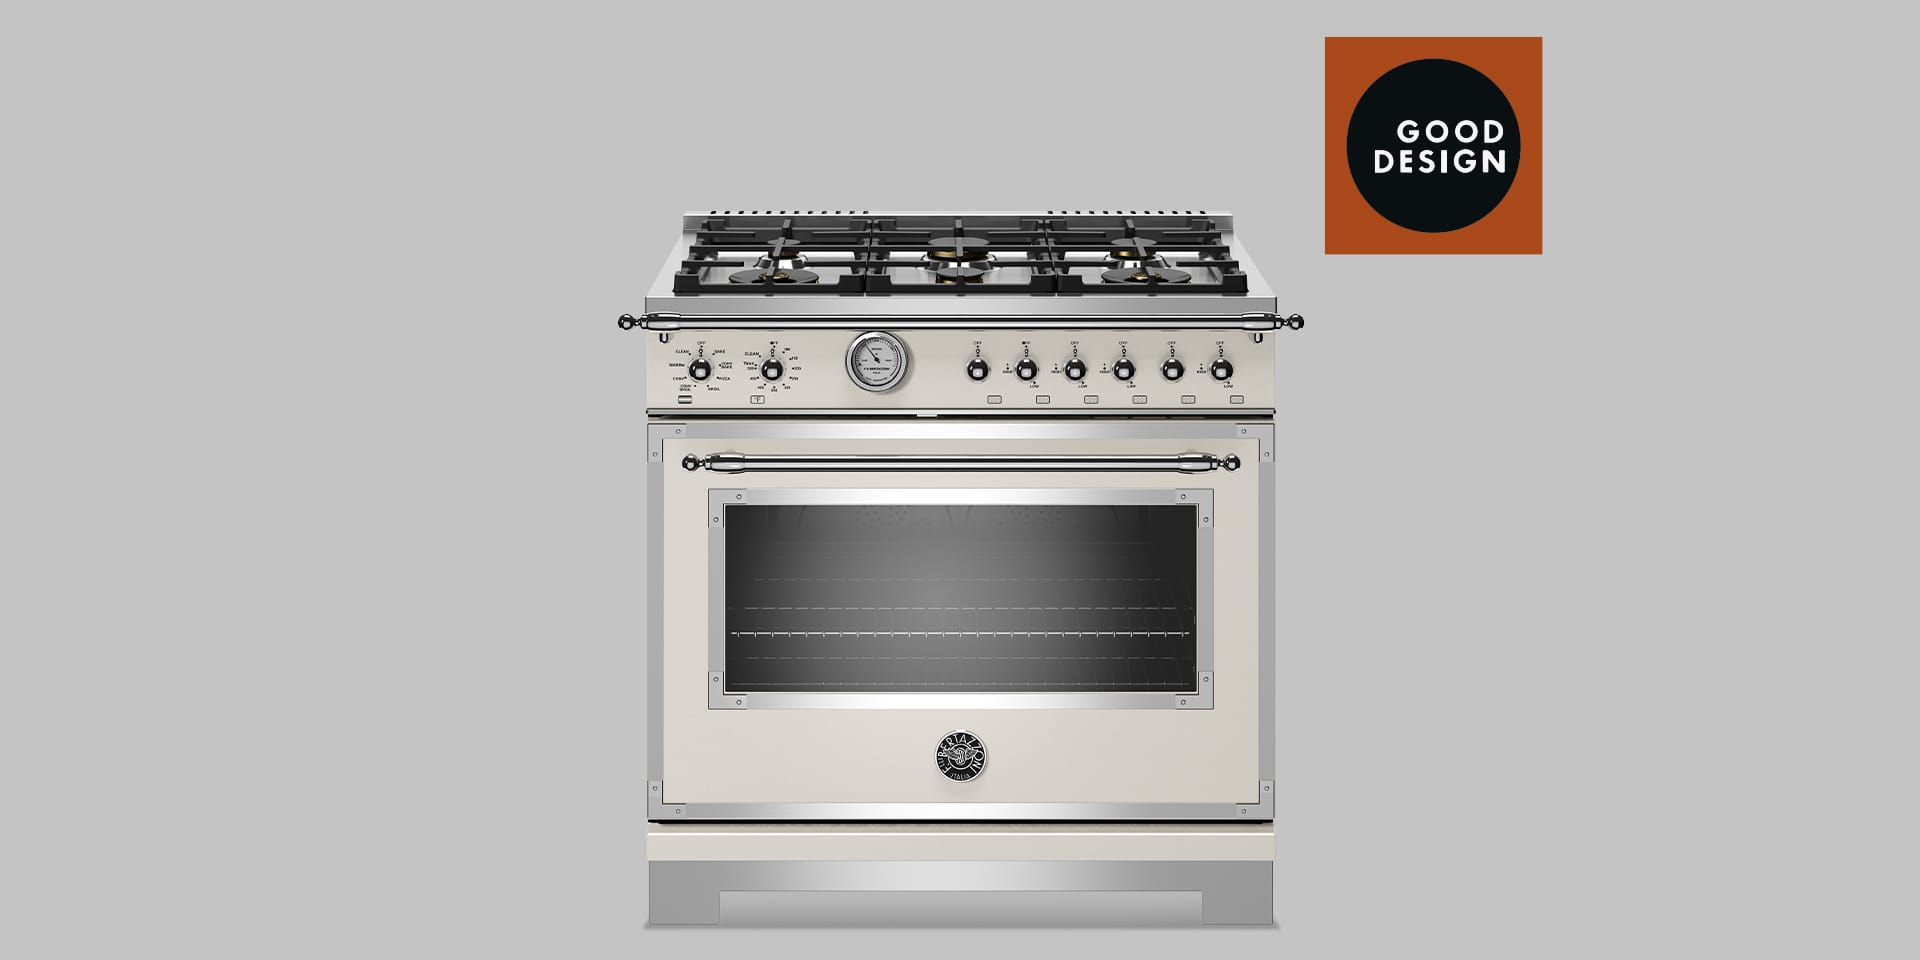 MM Design wins the GoodDesign Award for Bertazzoni